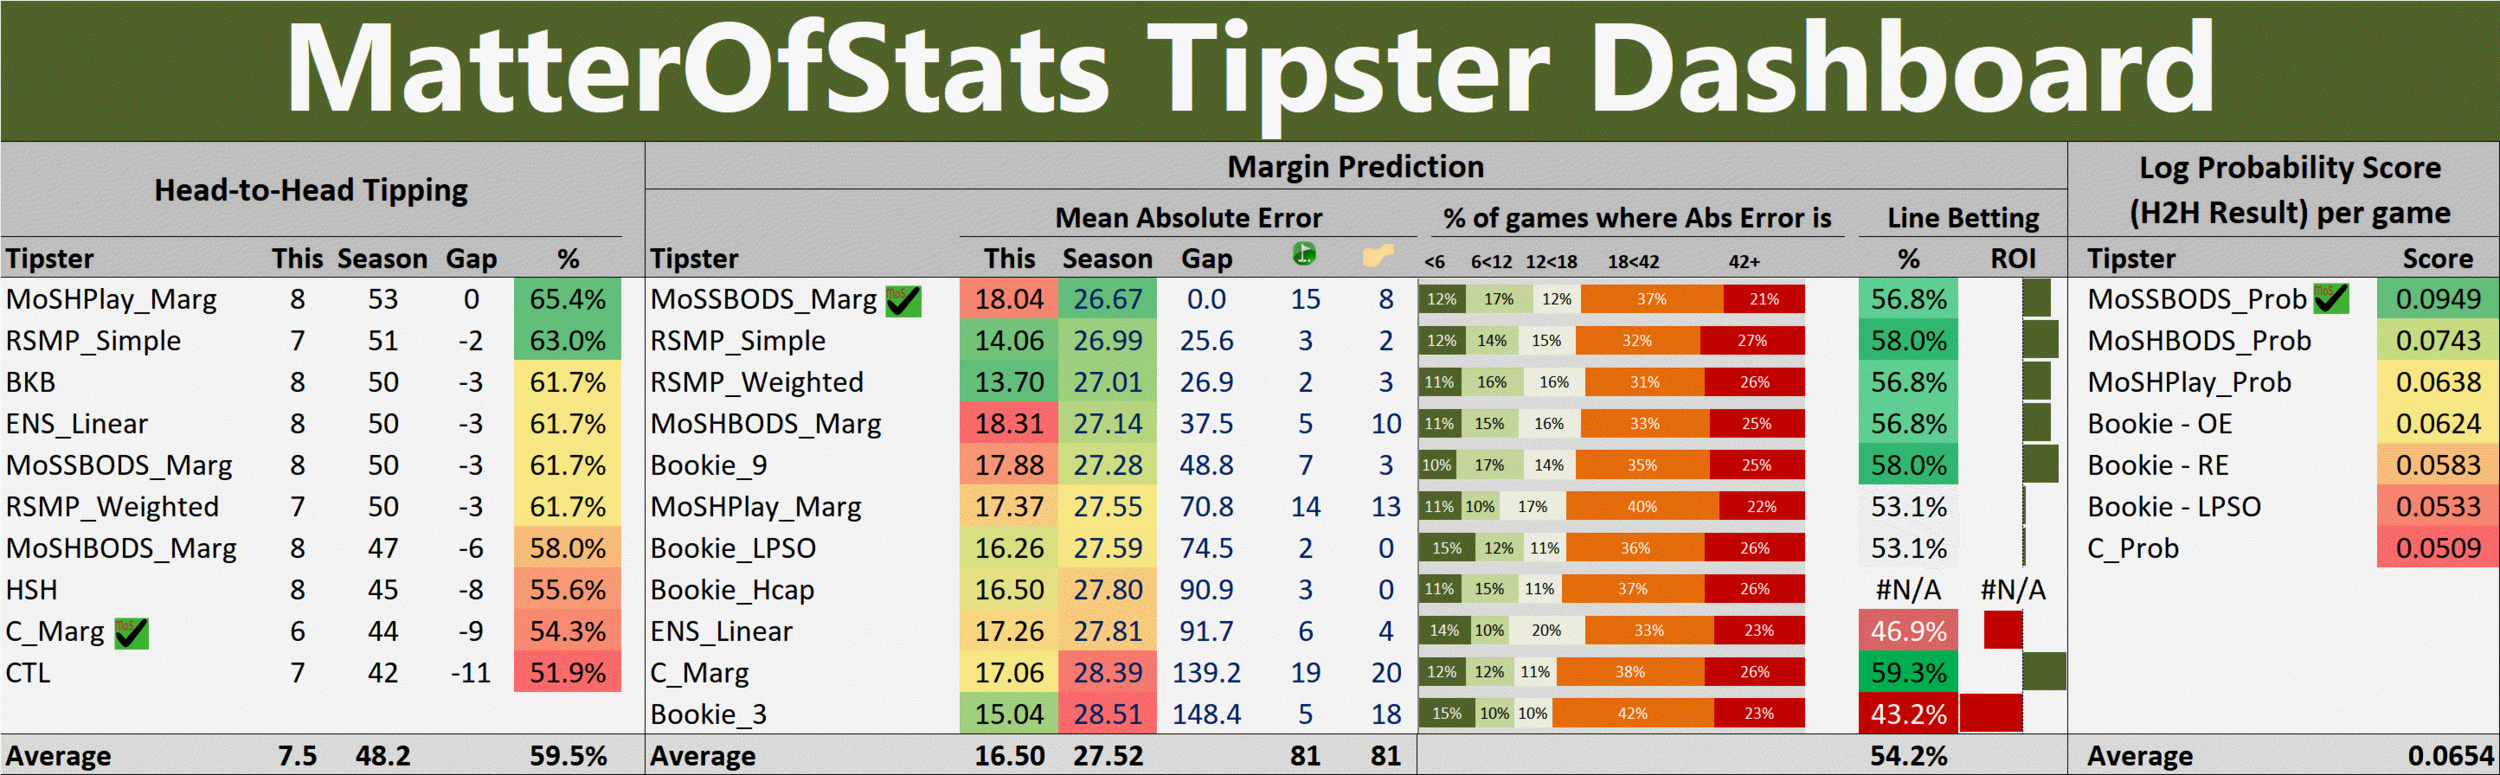 R9 - Tipster Dashboard.png